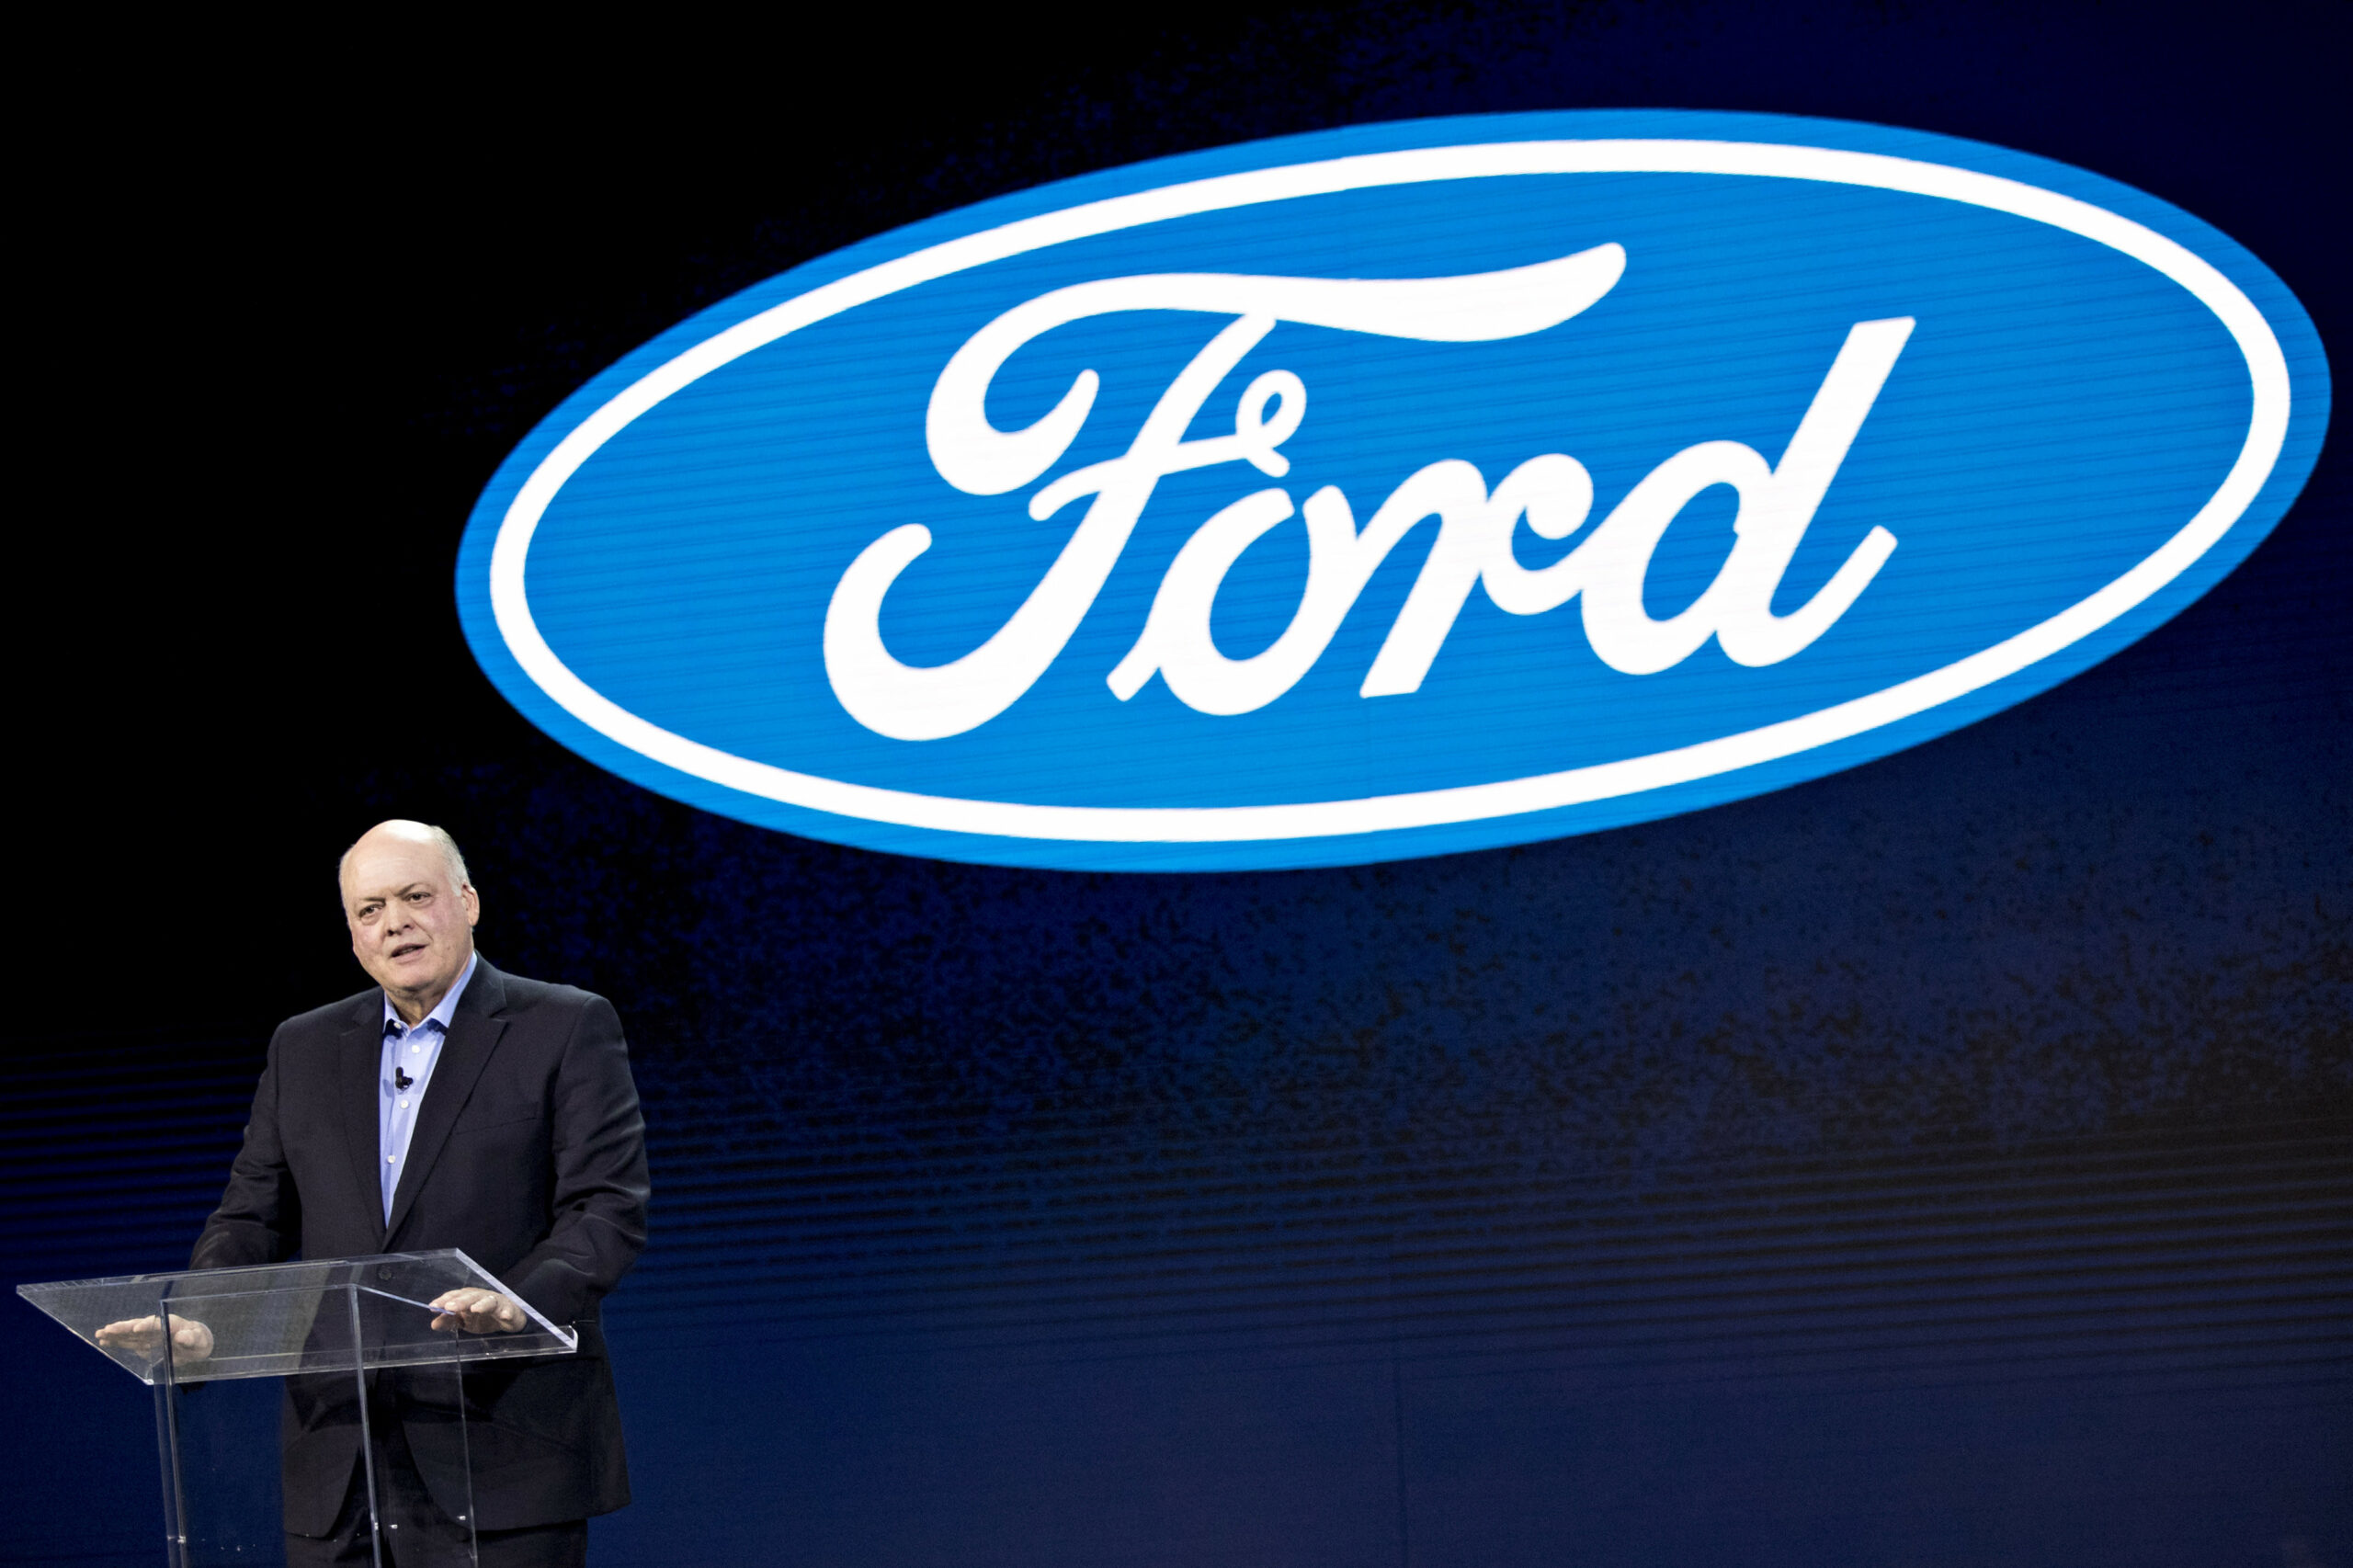 Ford shares fall on first-quarter revenue warning, sees losses ahead